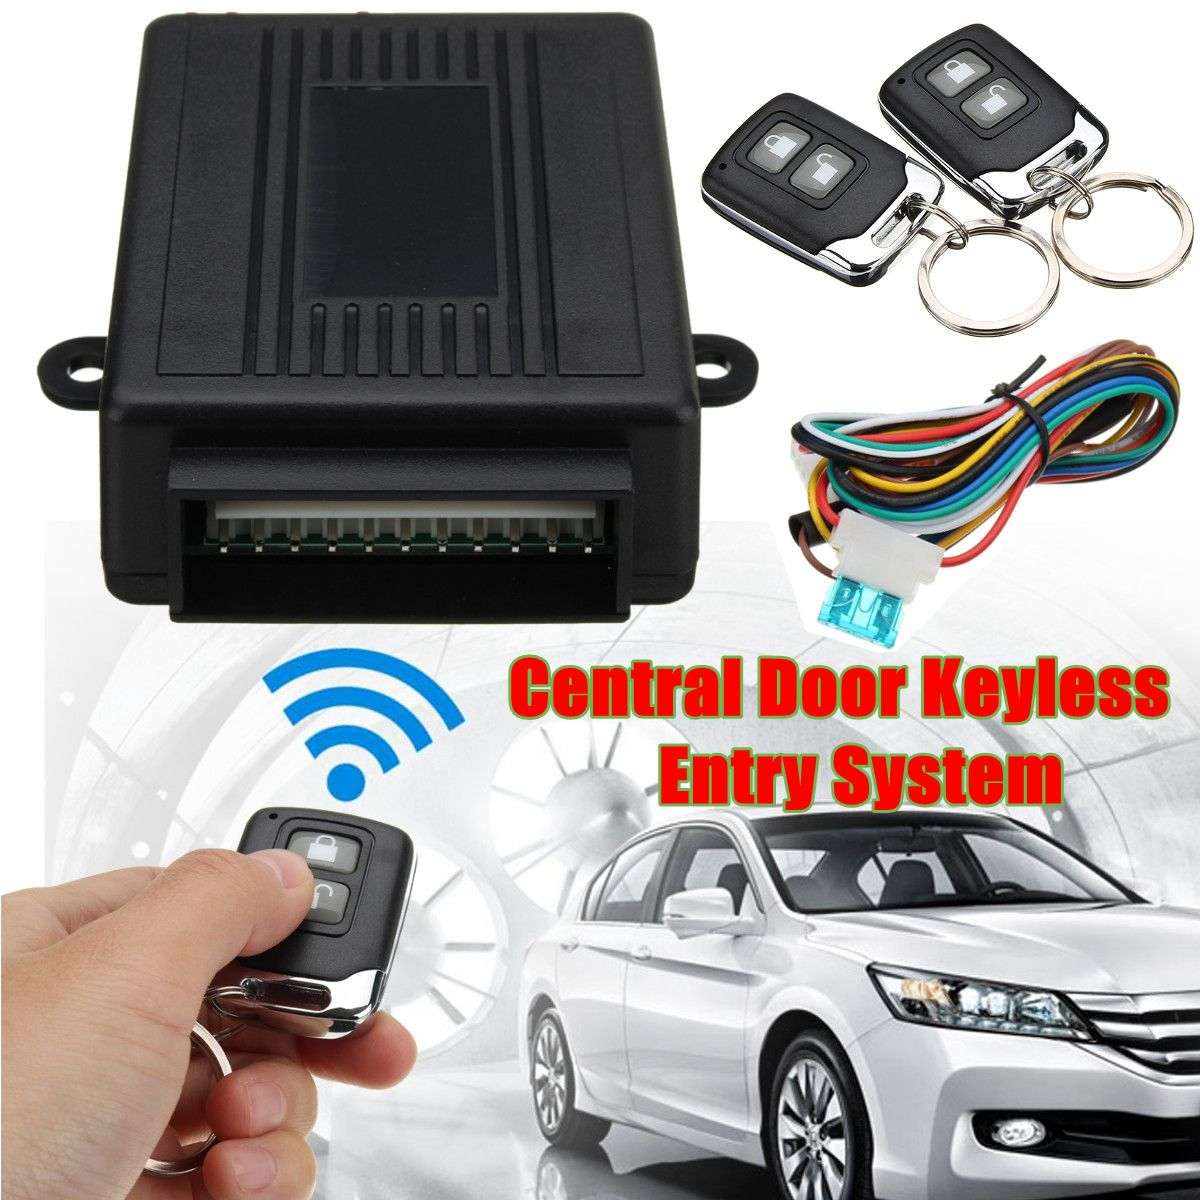 Universal Car Alarm Systems Central Door Lock Locking Keyless Entry System With 2 Remote Controllers 12V 108dB